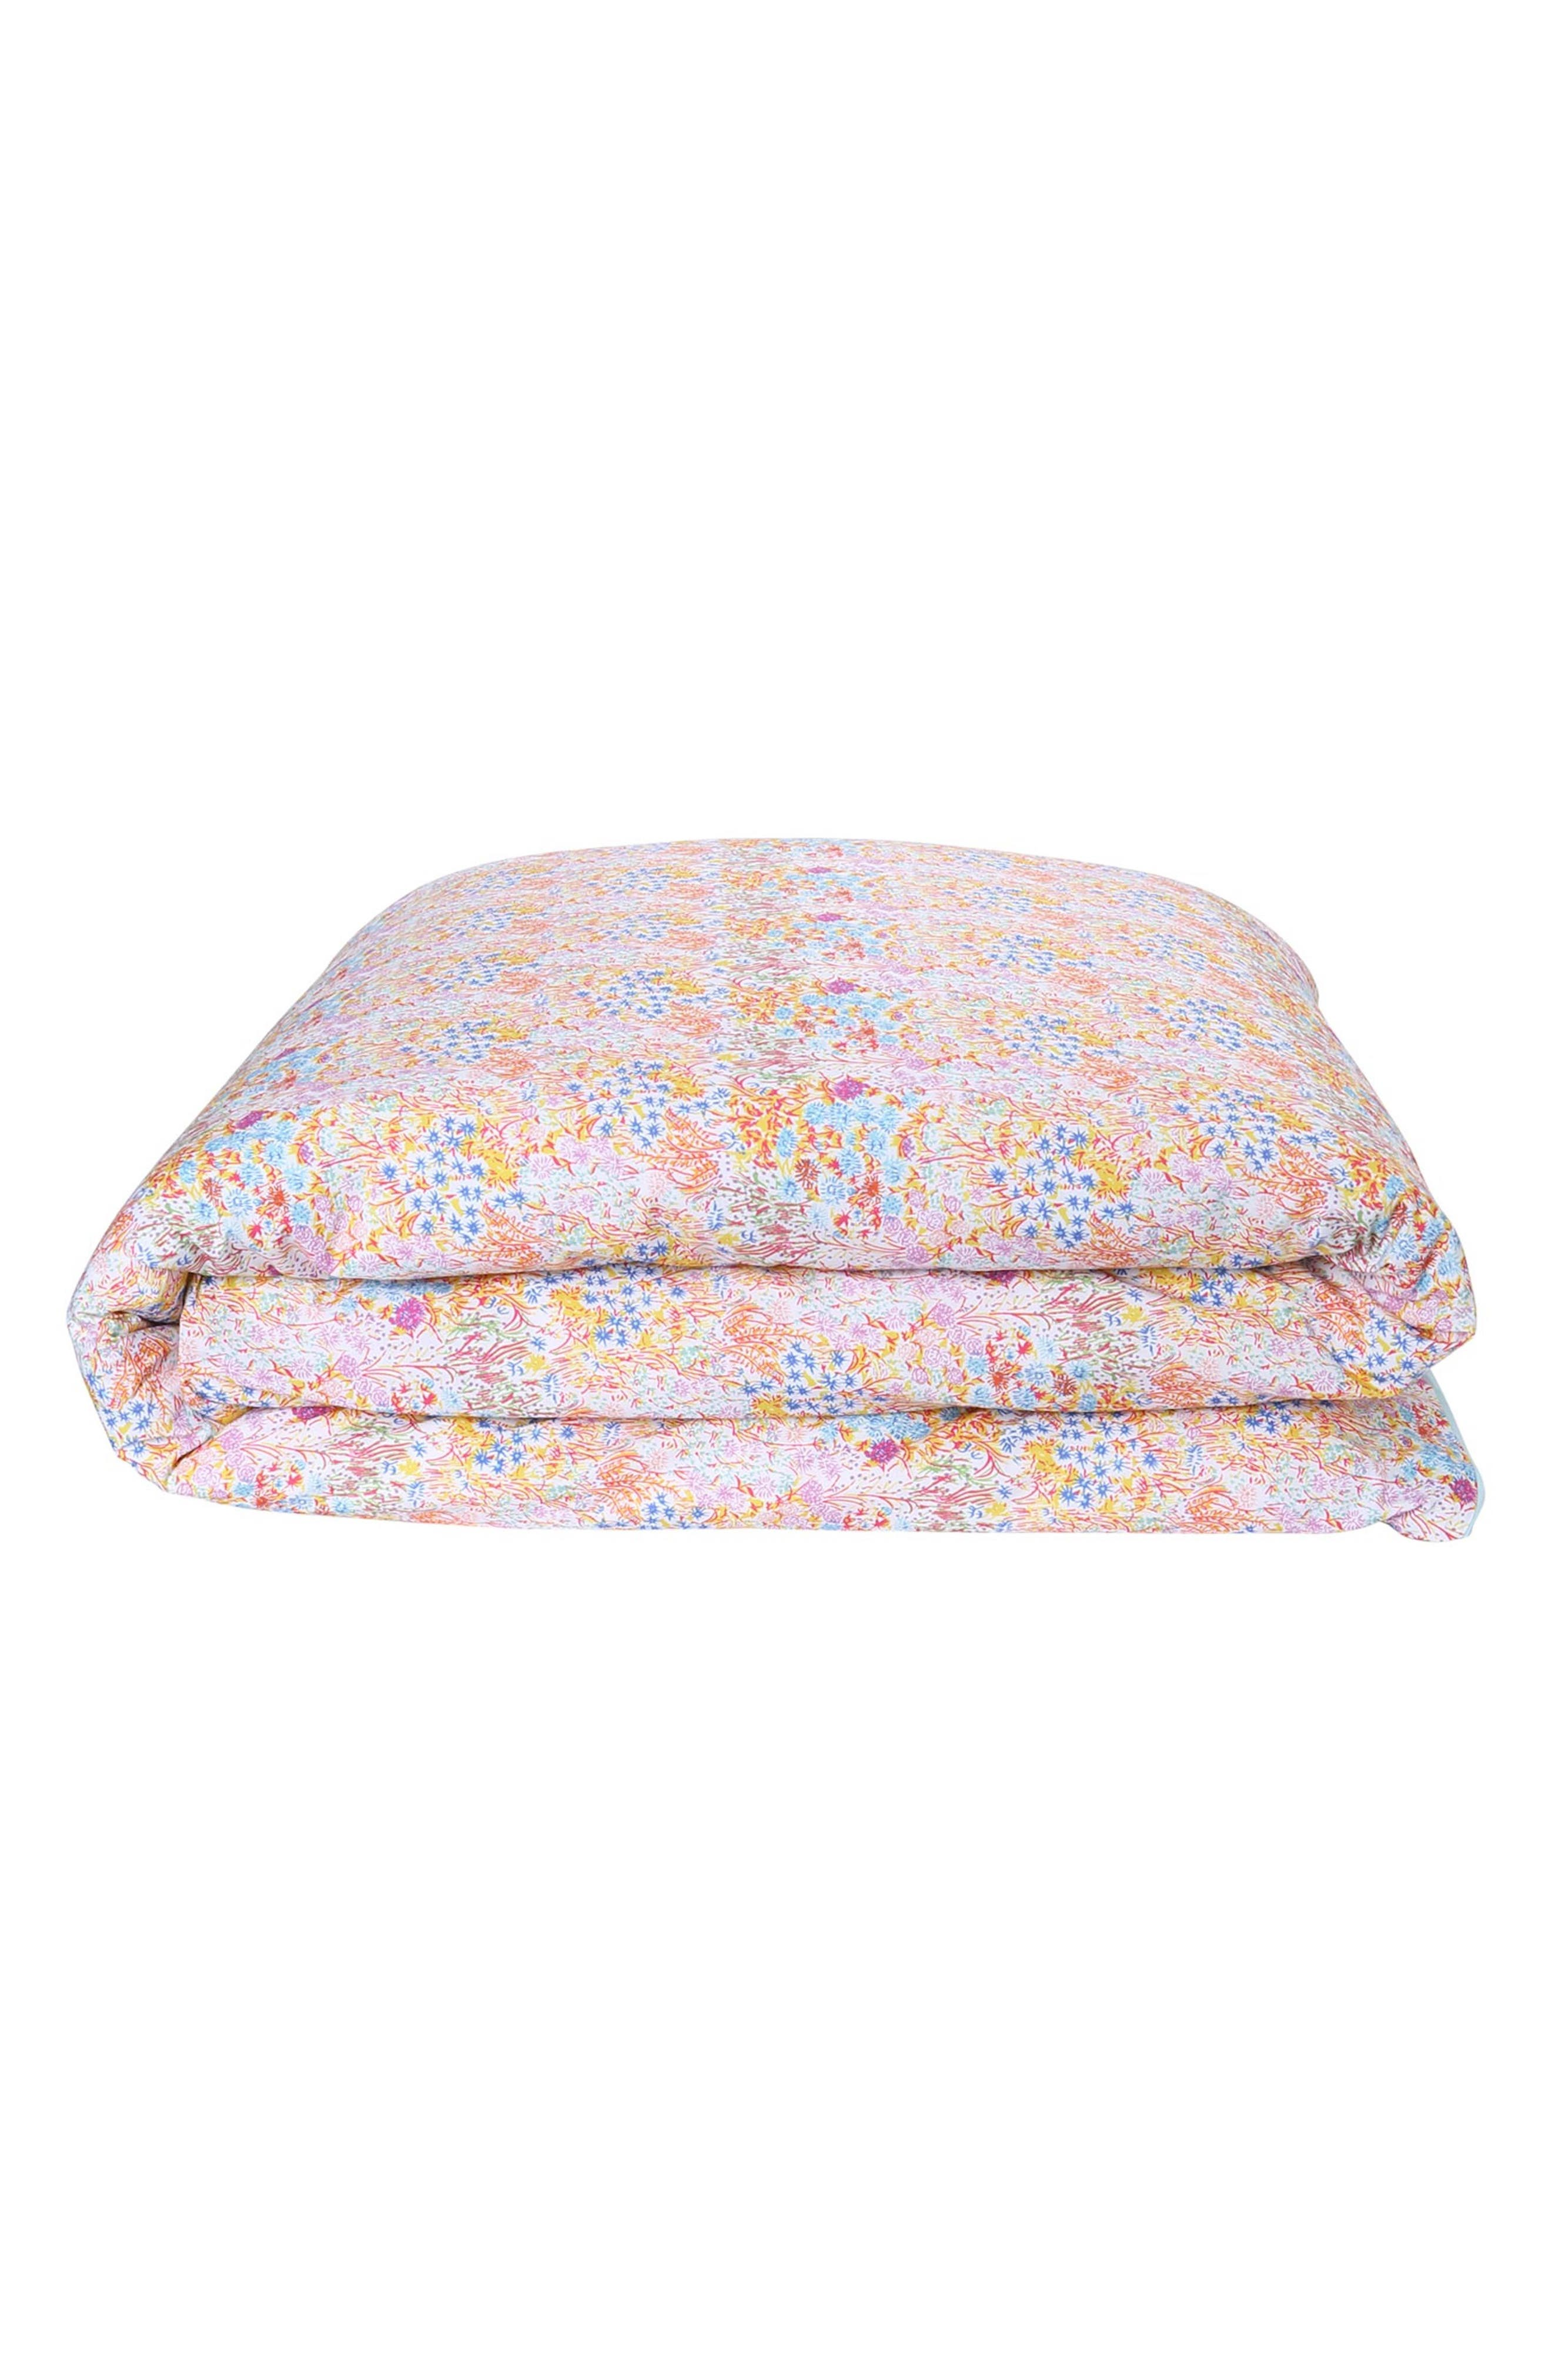 Little Colored Flowers Cotton Comforter,                             Main thumbnail 1, color,                             MULTI